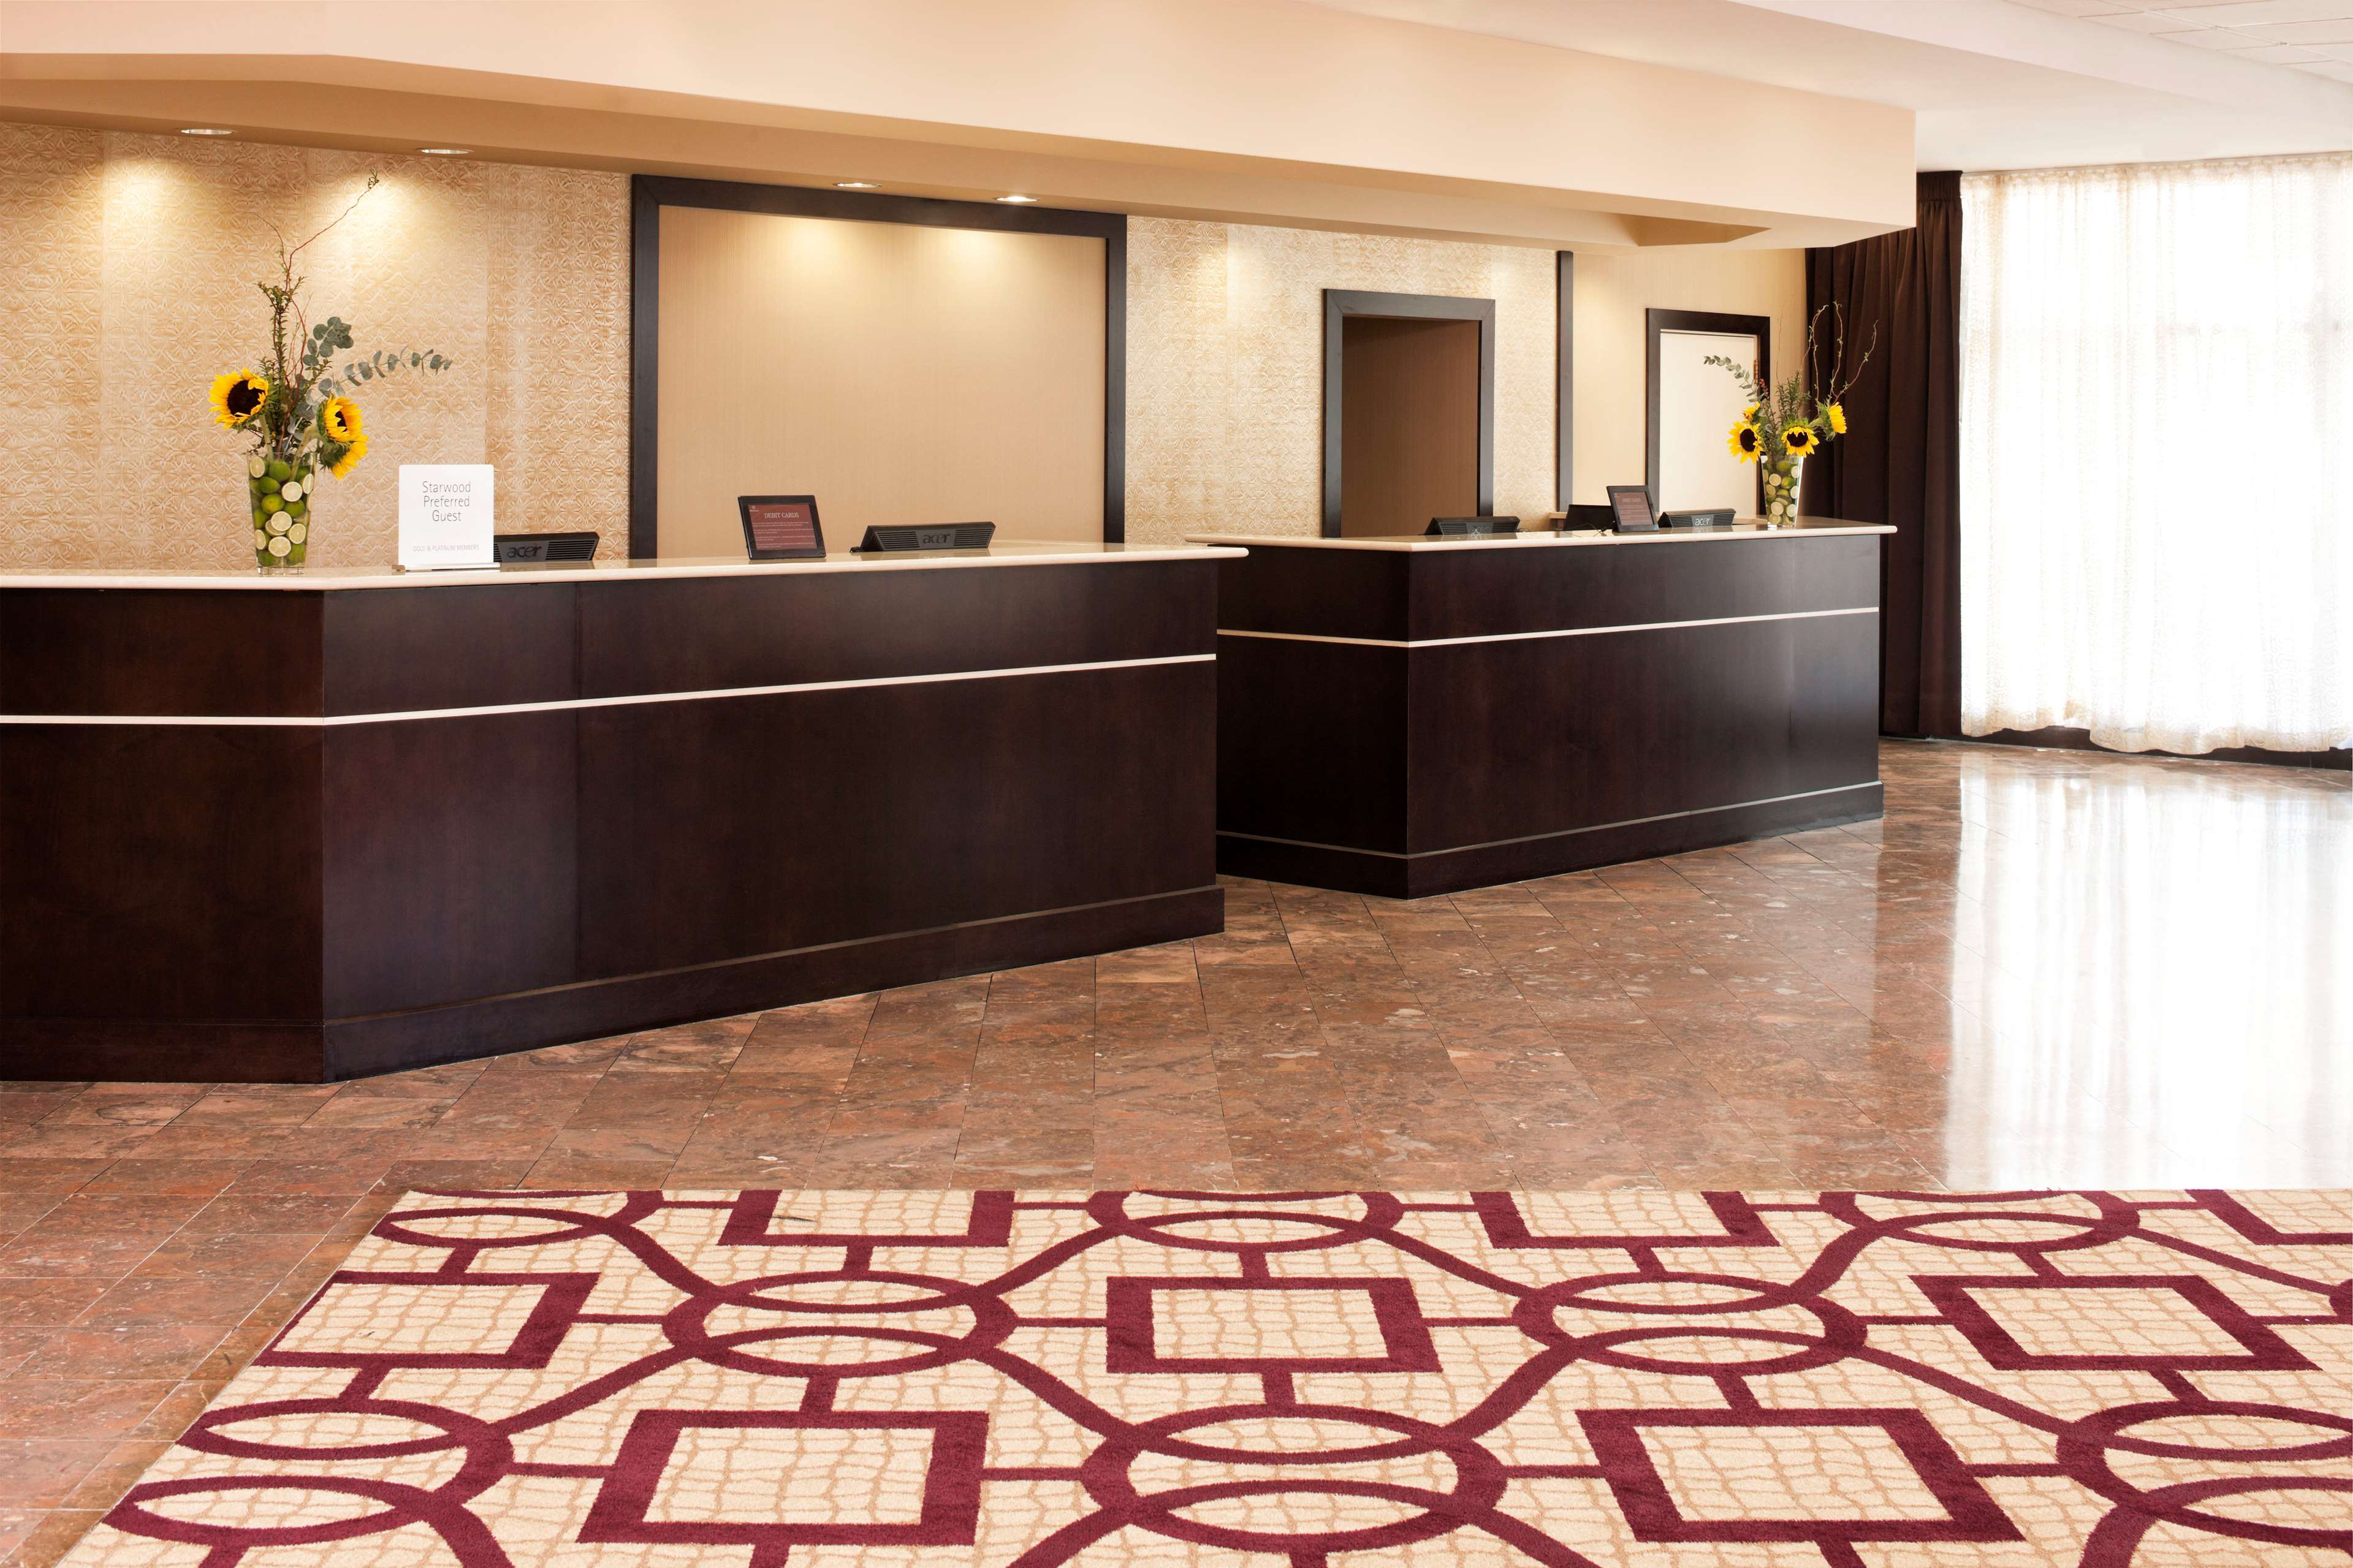 Sheraton Suites Chicago O'Hare image 2